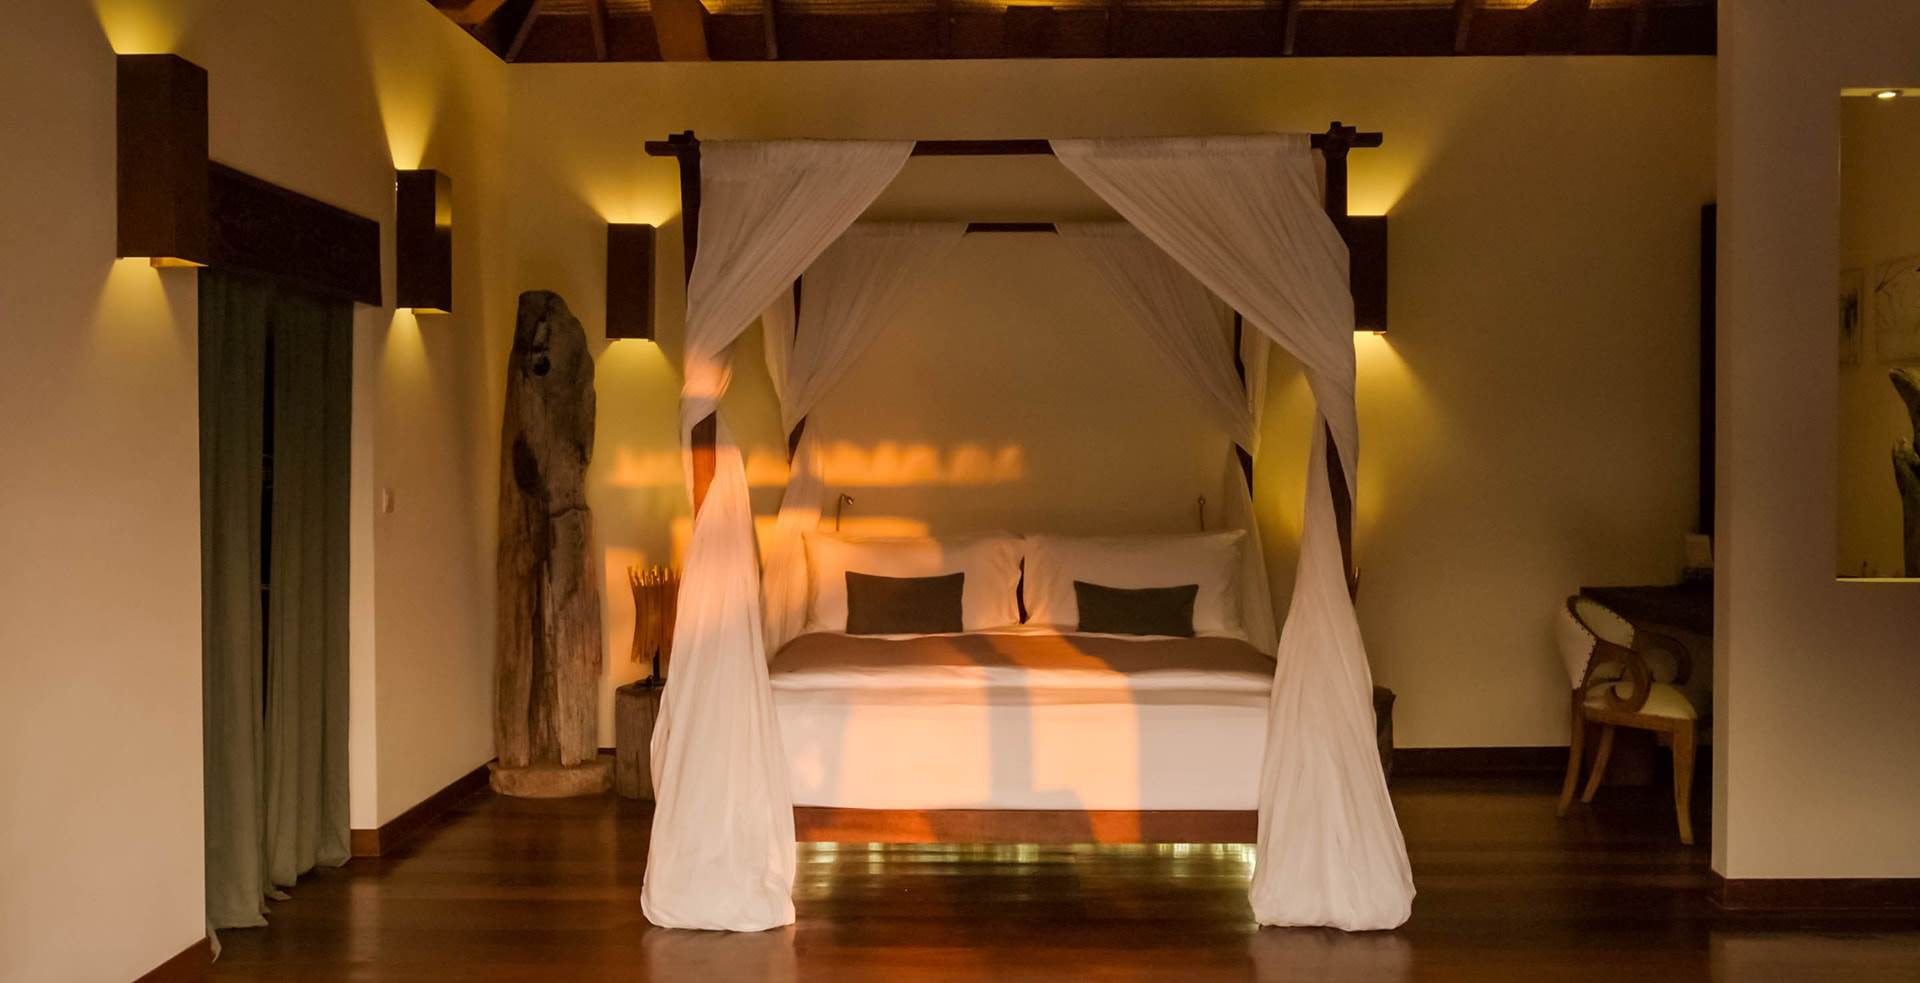 King-size bed in Royal Villa